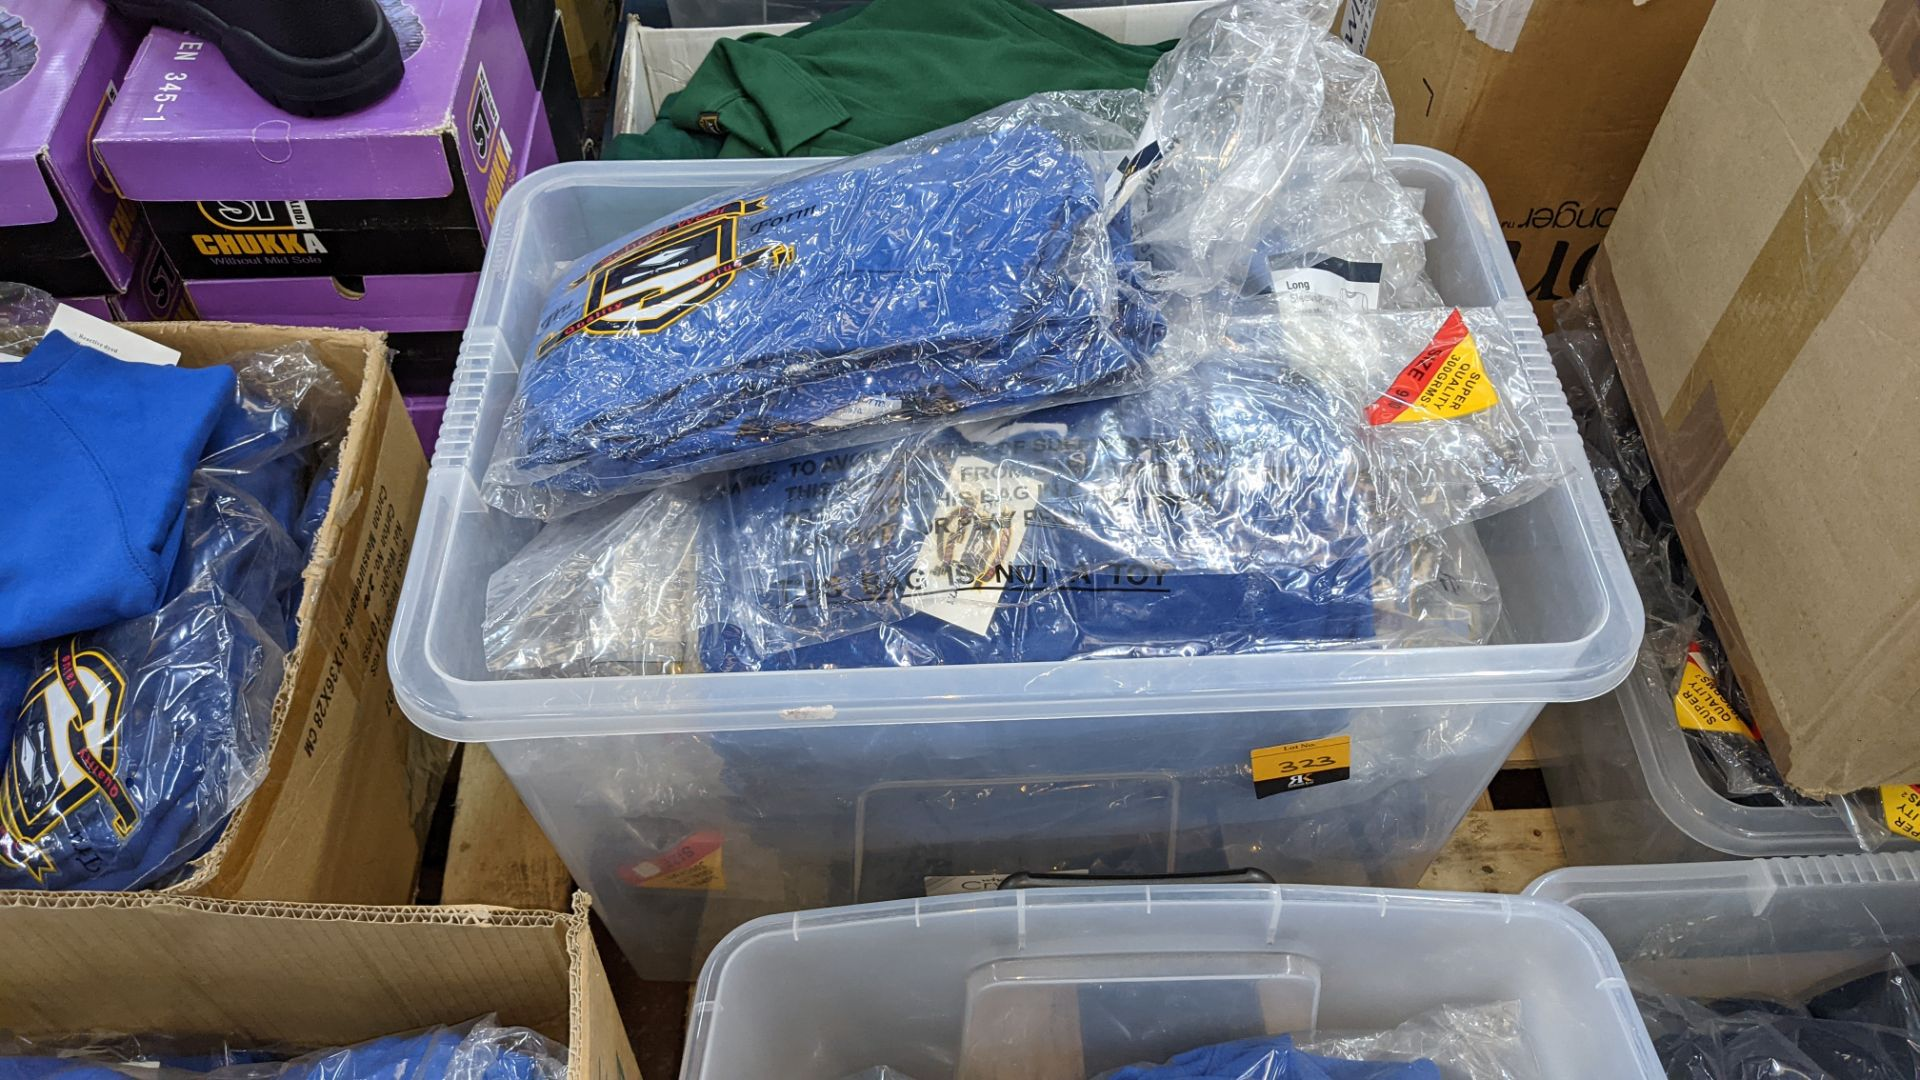 Approx 39 off blue children's sweatshirts & similar - the contents of 1 crate. NB crate excluded